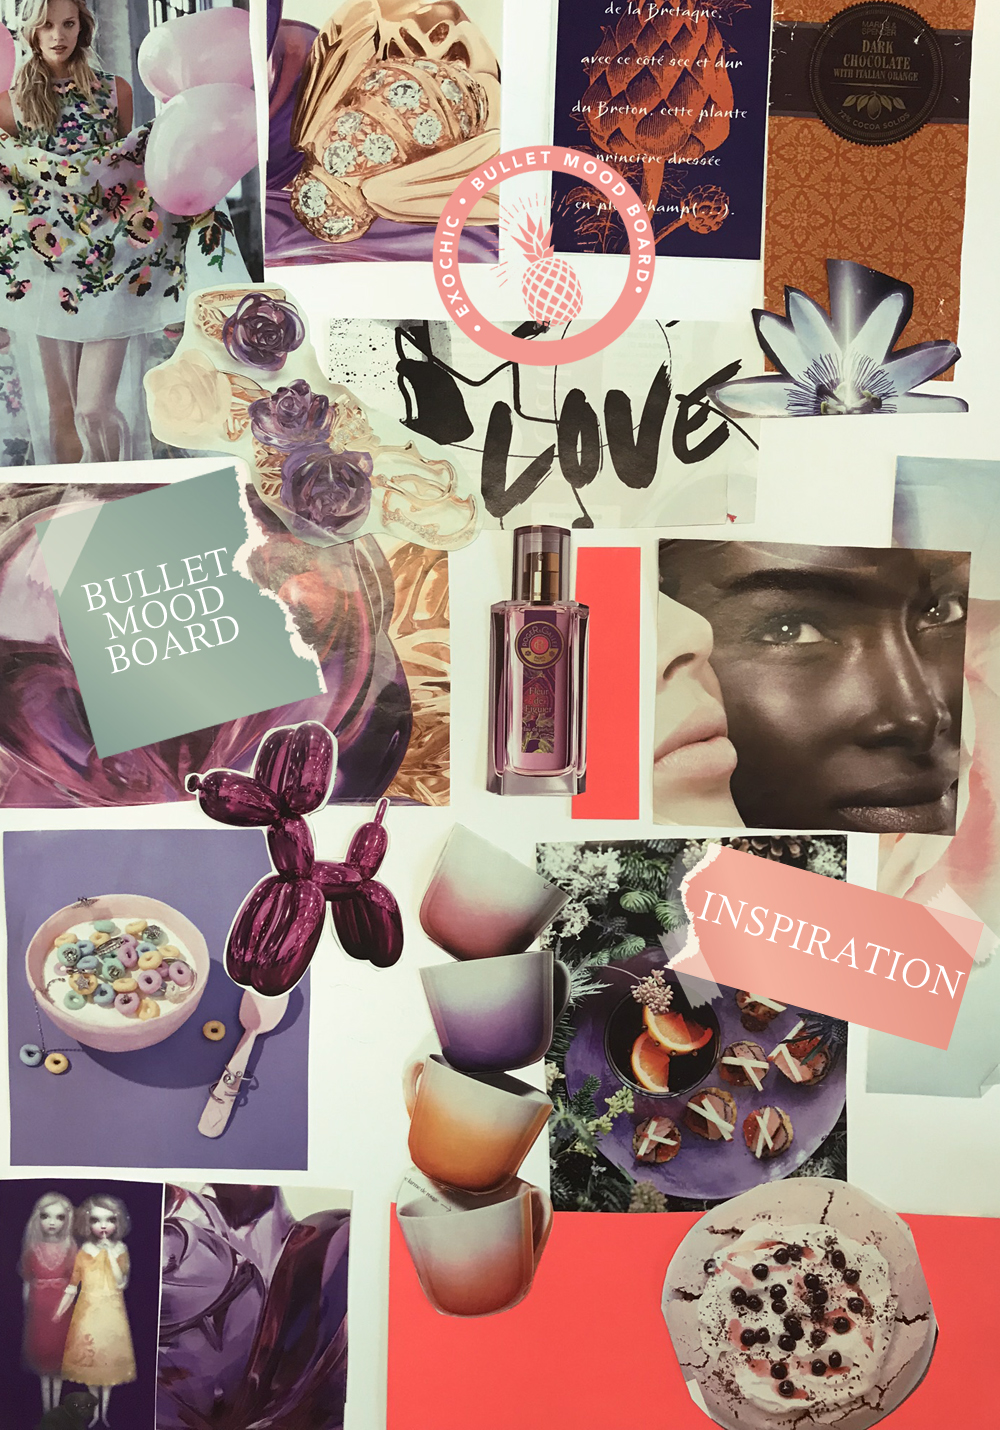 Air Chic Design:disque externe:EXOChic:1 -POSTS:1 - ARTICLES:2018:03 - MARS:03 Vision BOARD:Image blog:Bullet mood board exochic 3.jpg